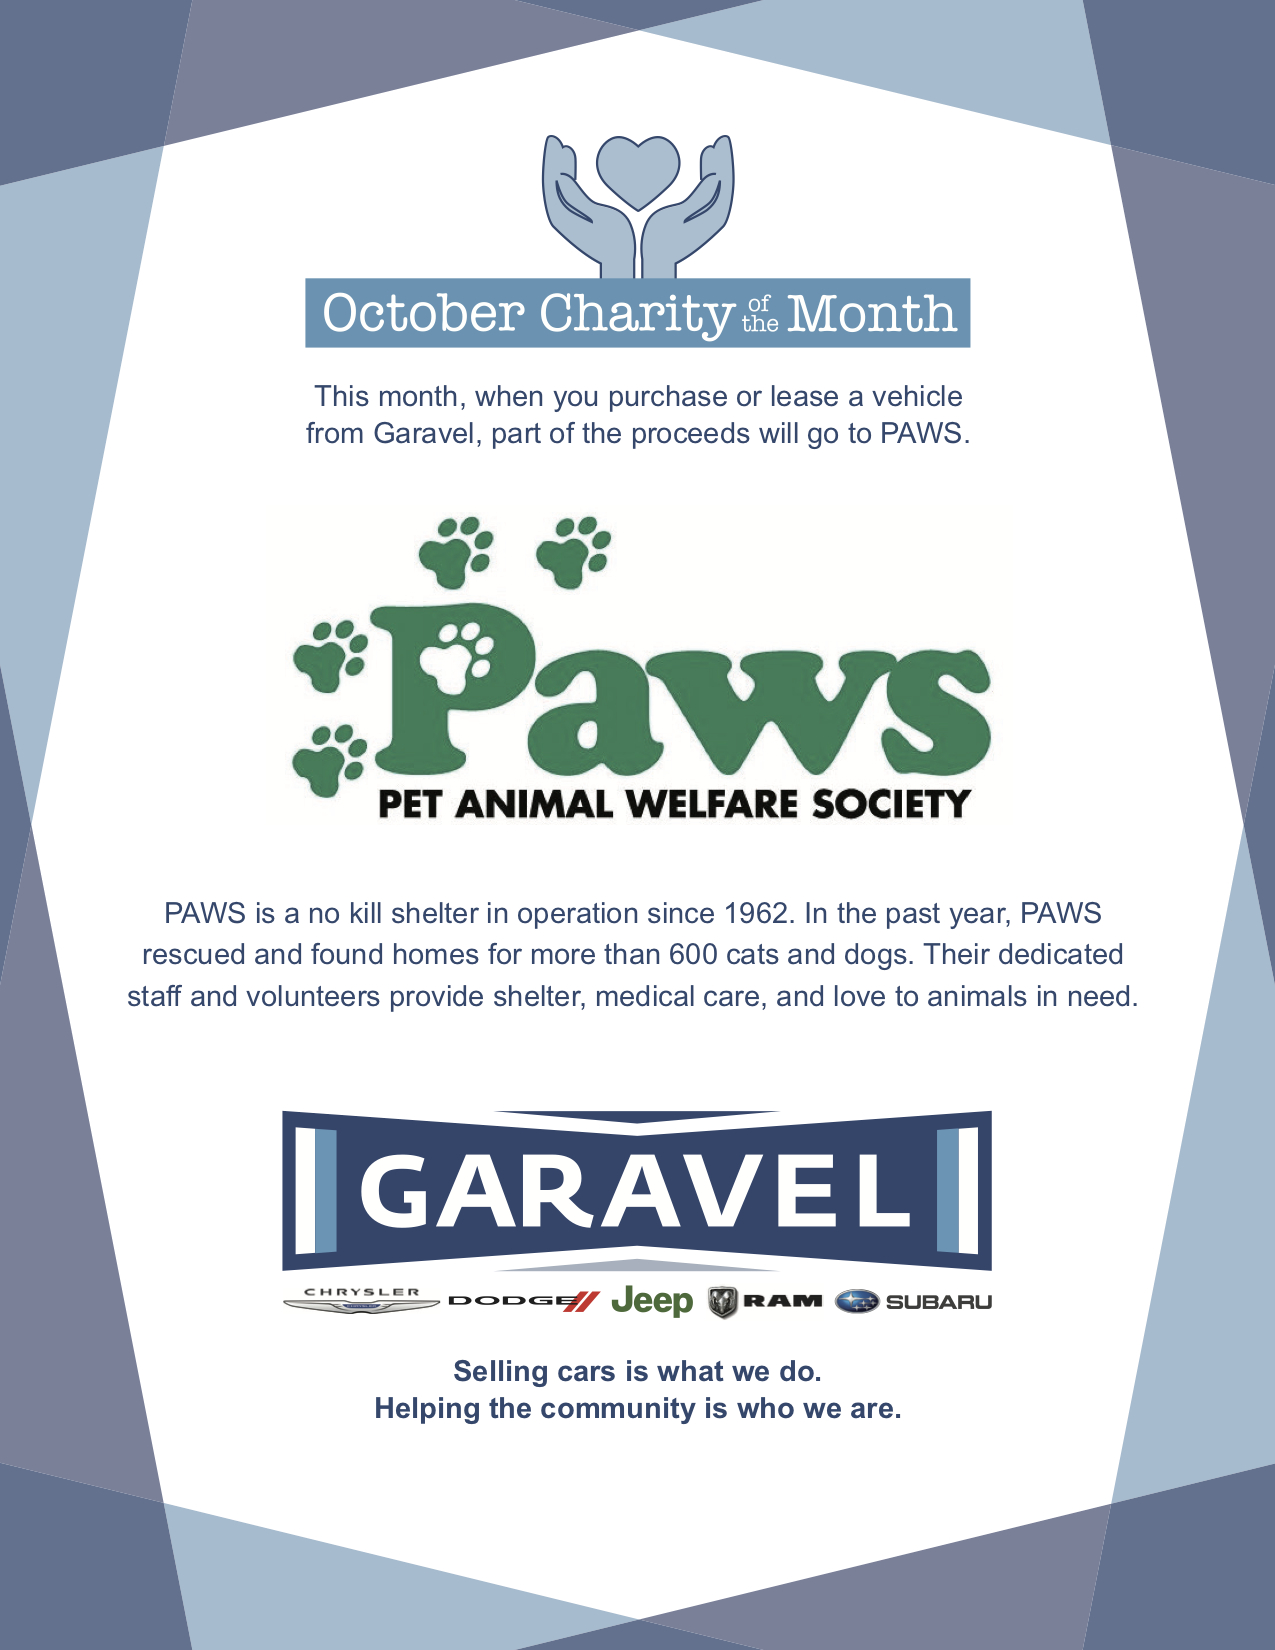 October Charity of the Month